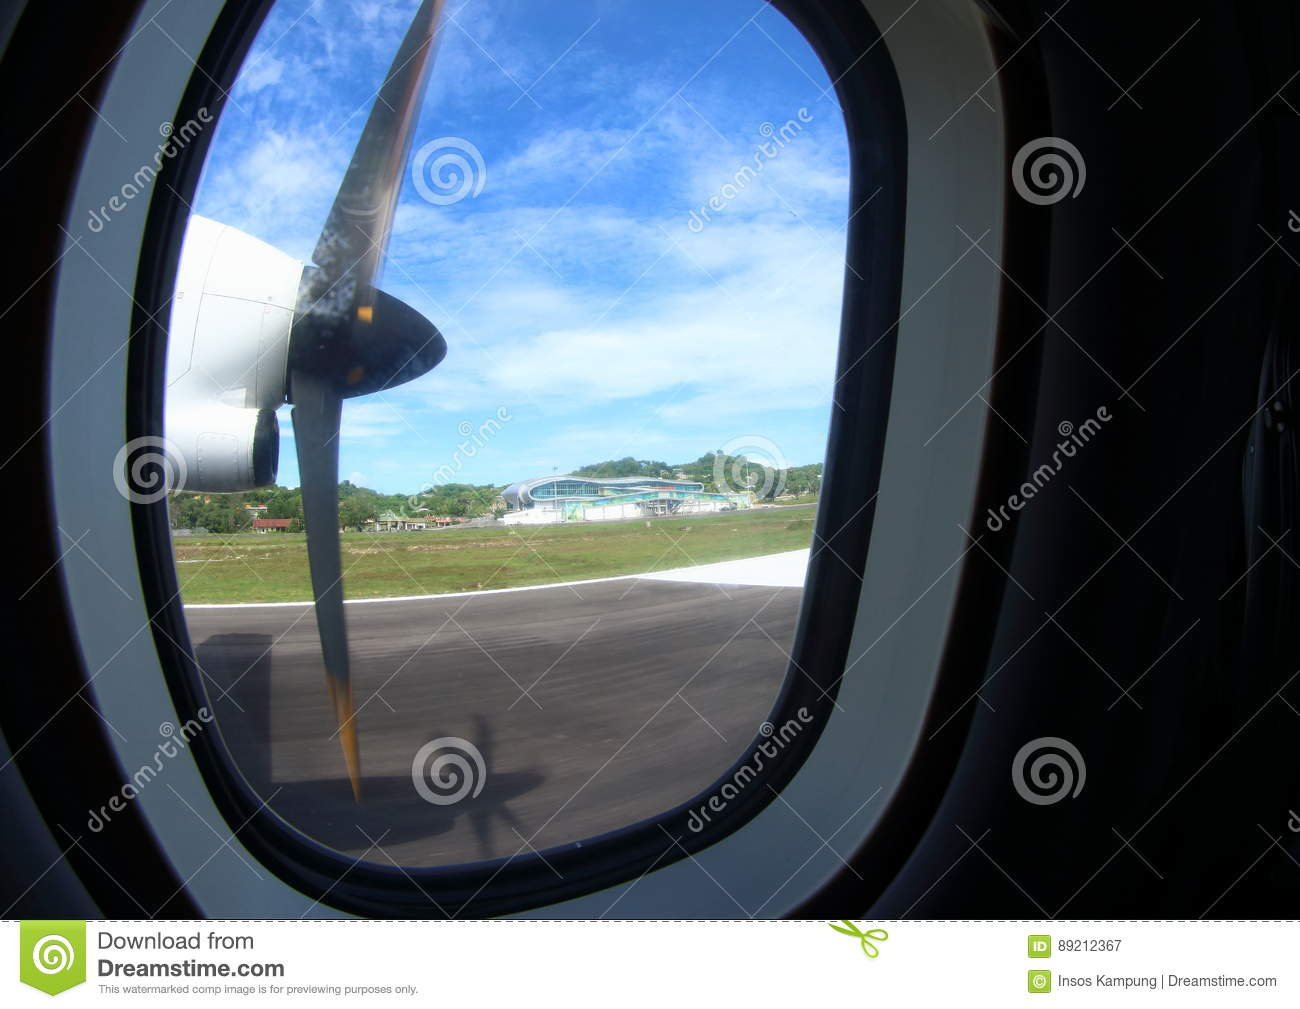 Get Ready to Take Off